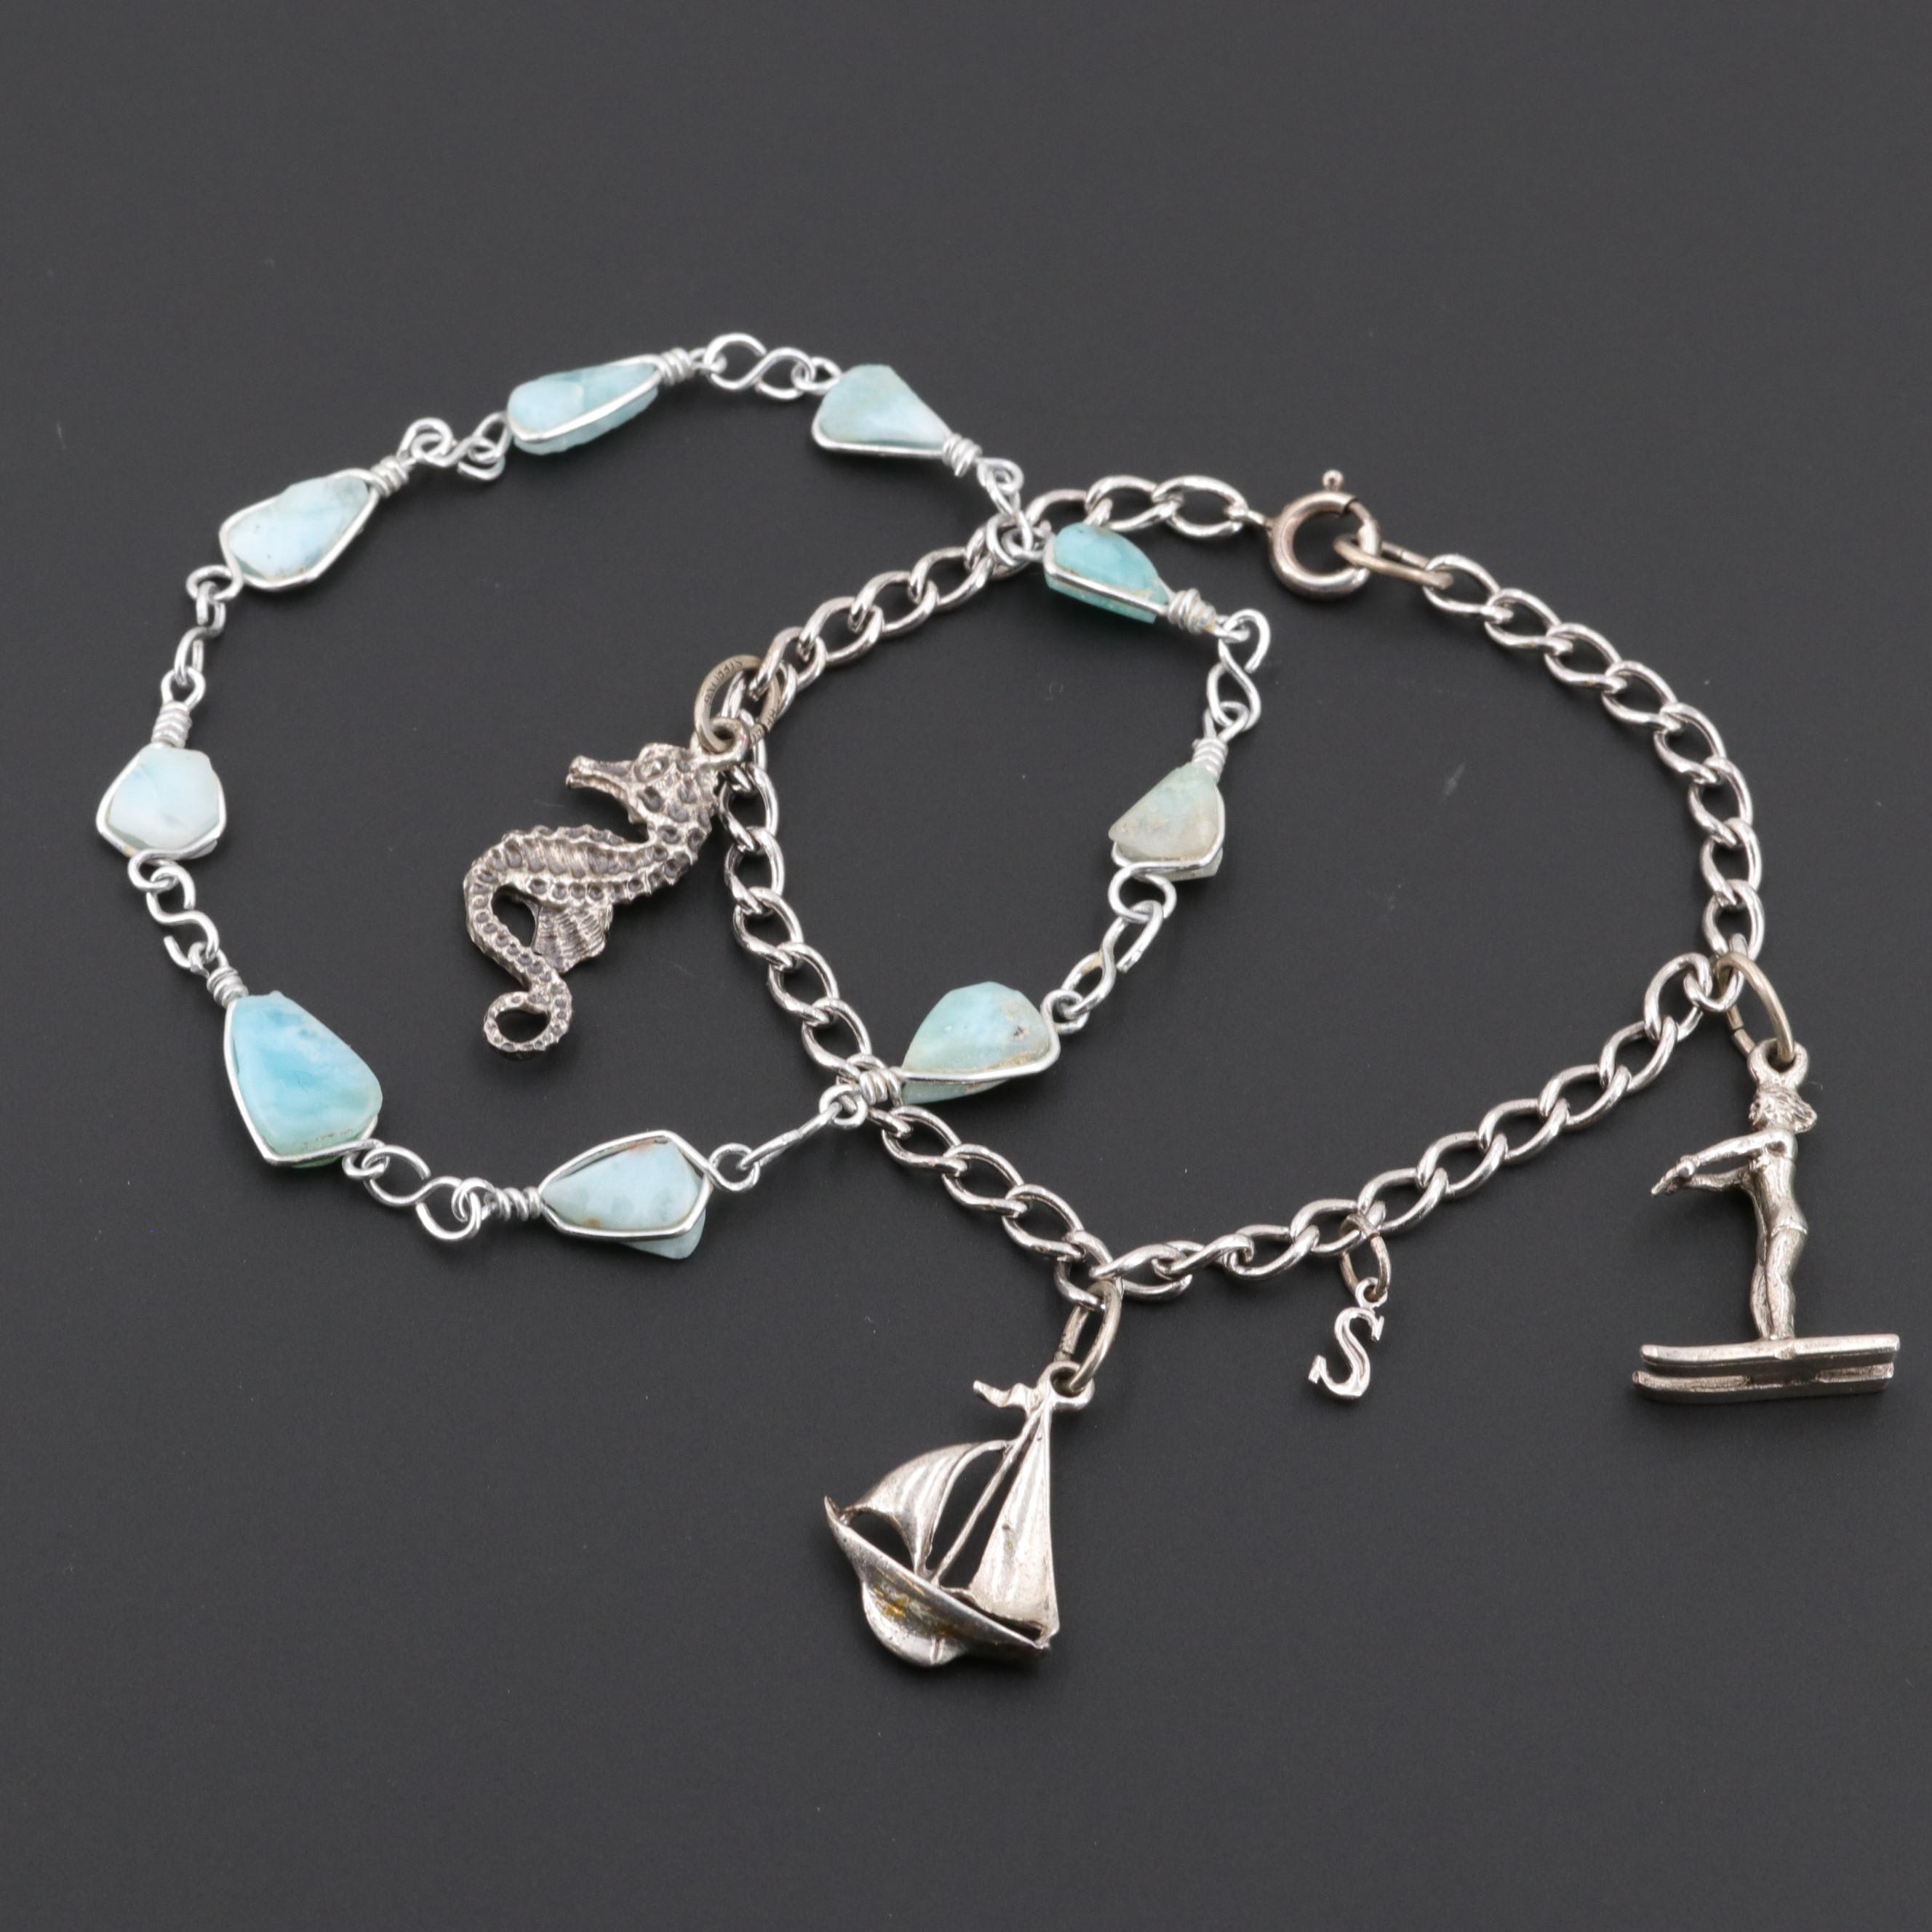 Silver Tone and Sterling Silver Larimar Bracelets Featuring Beau